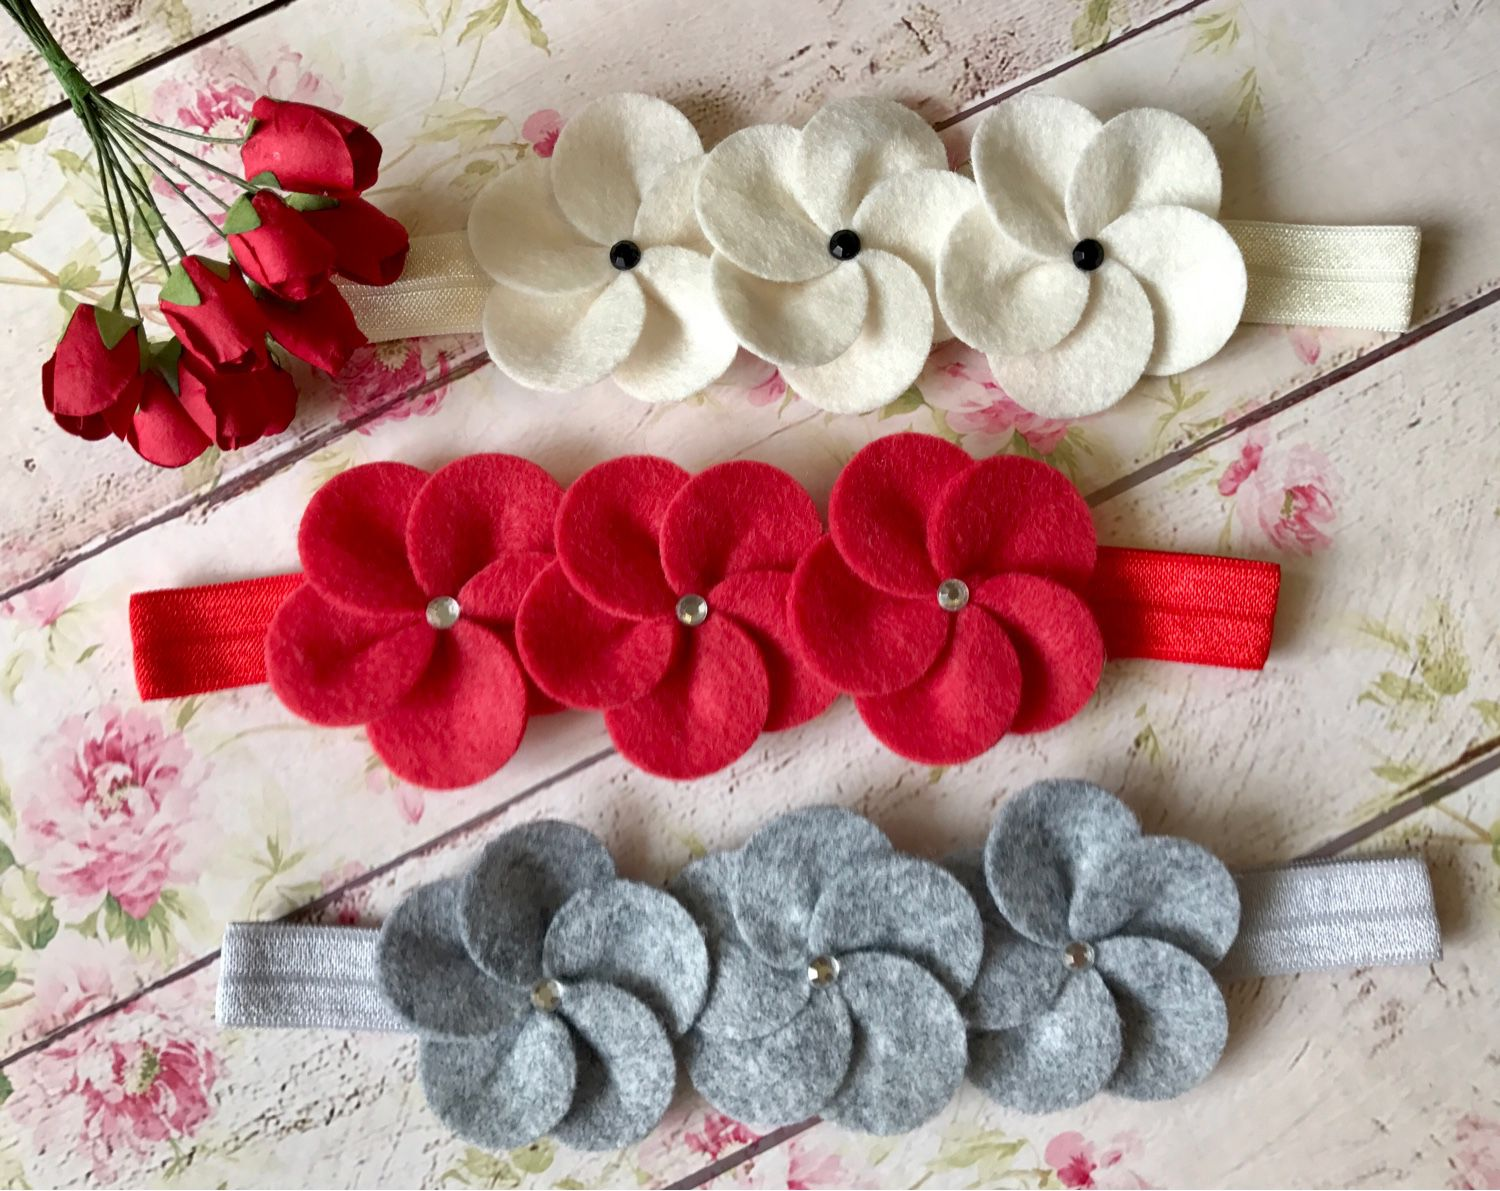 Headband 'Buttercups', Hairpins and elastic bands for hair, Moscow,  Фото №1